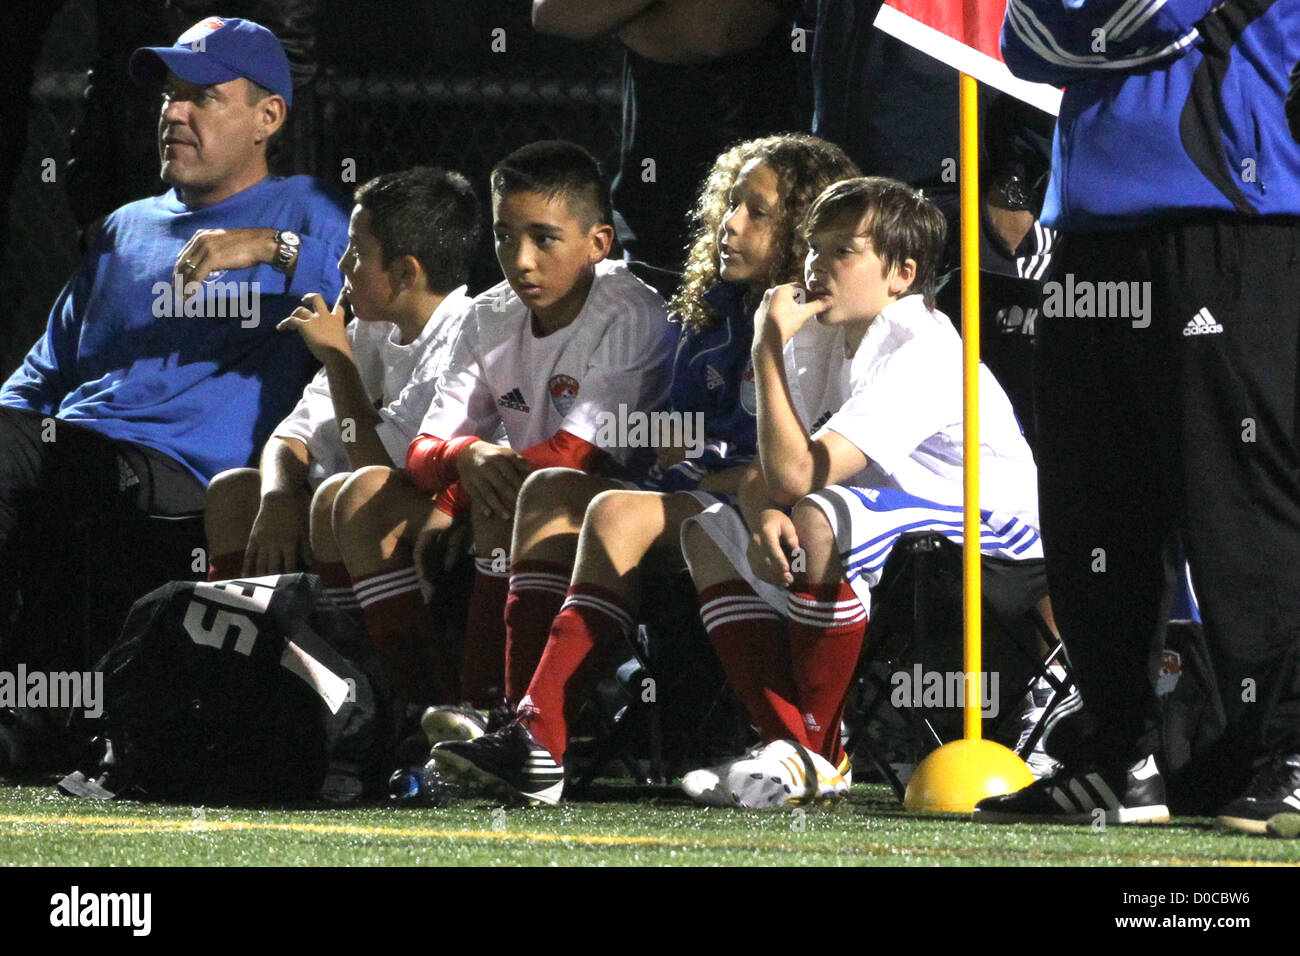 Brooklyn Beckham sits on the sidelines during his football match Los Angeles, California - Stock Image